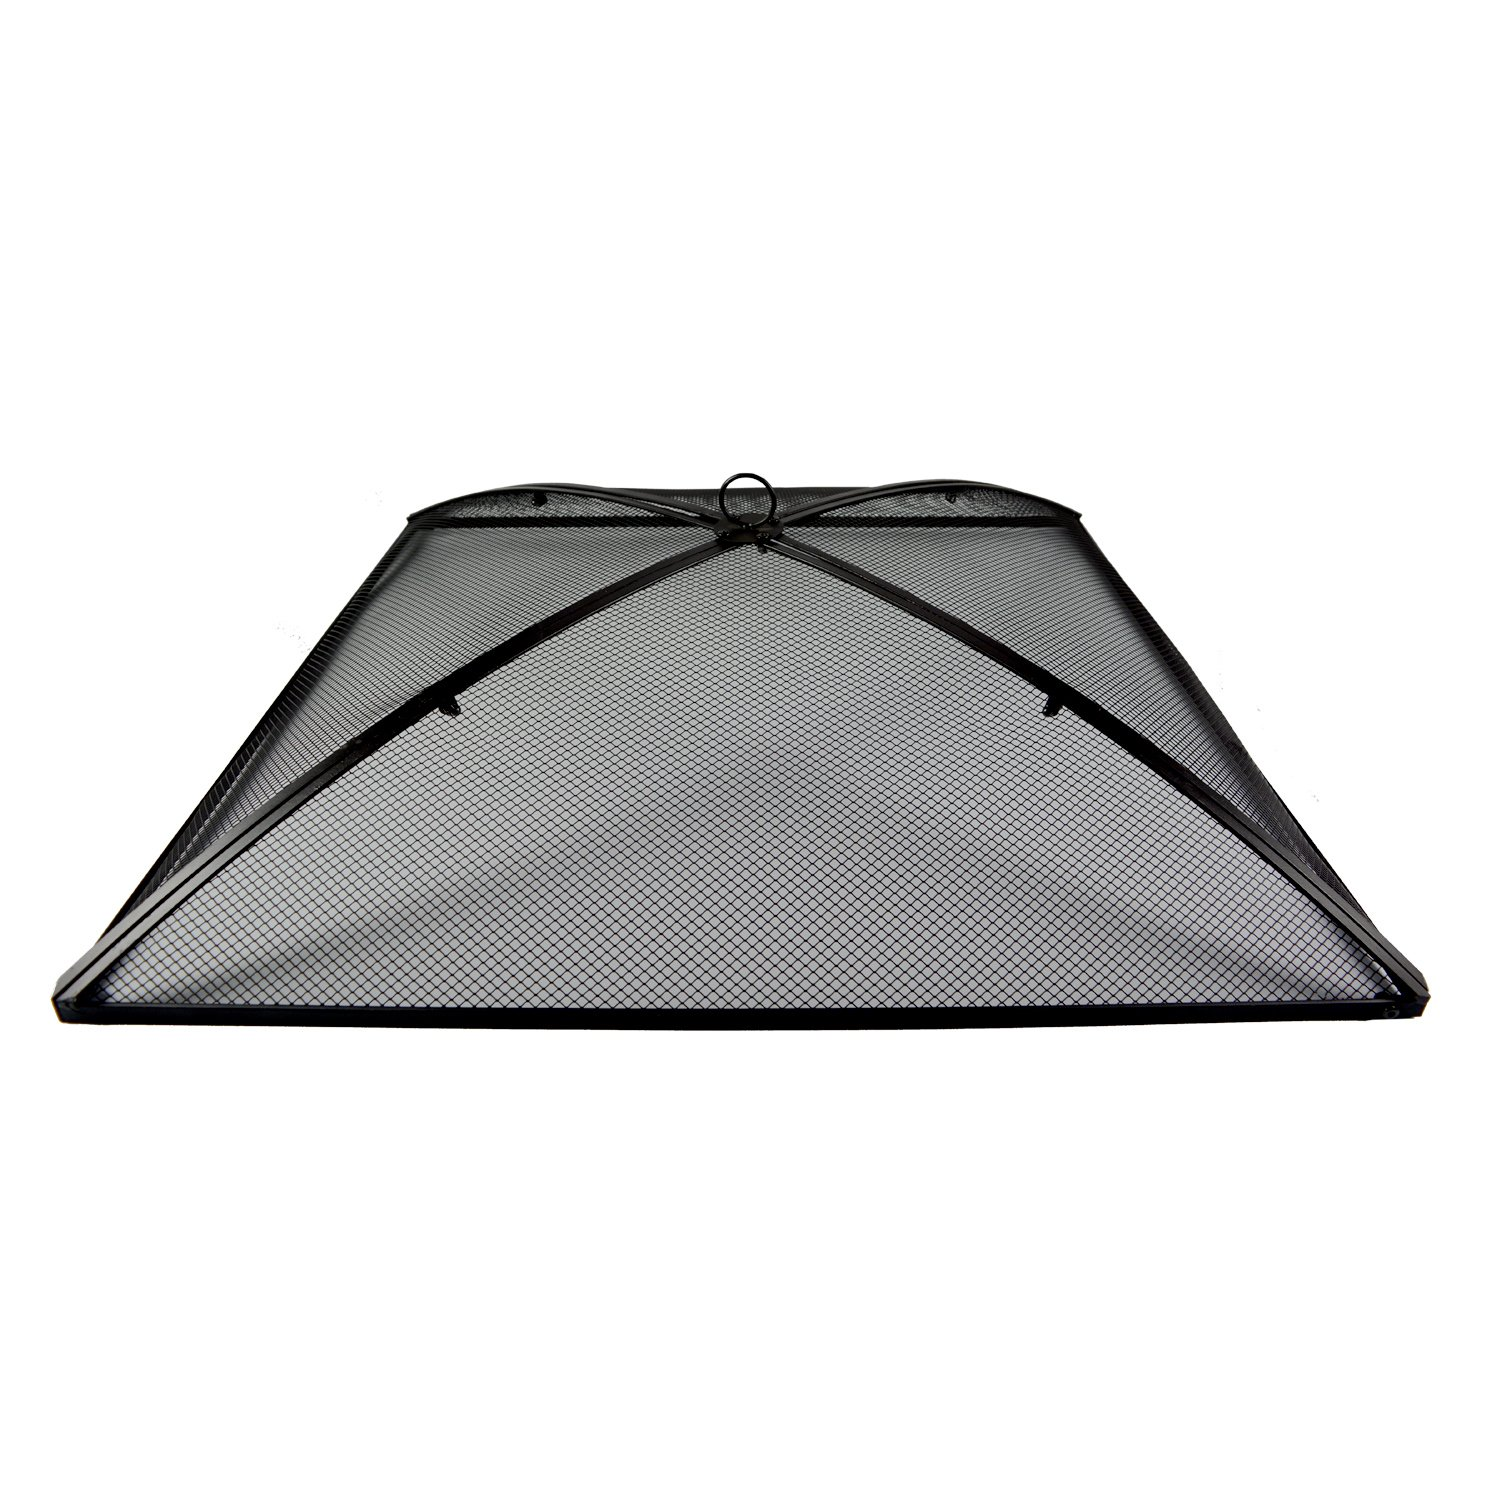 36-Inch Square Fire Pit Spark Screen